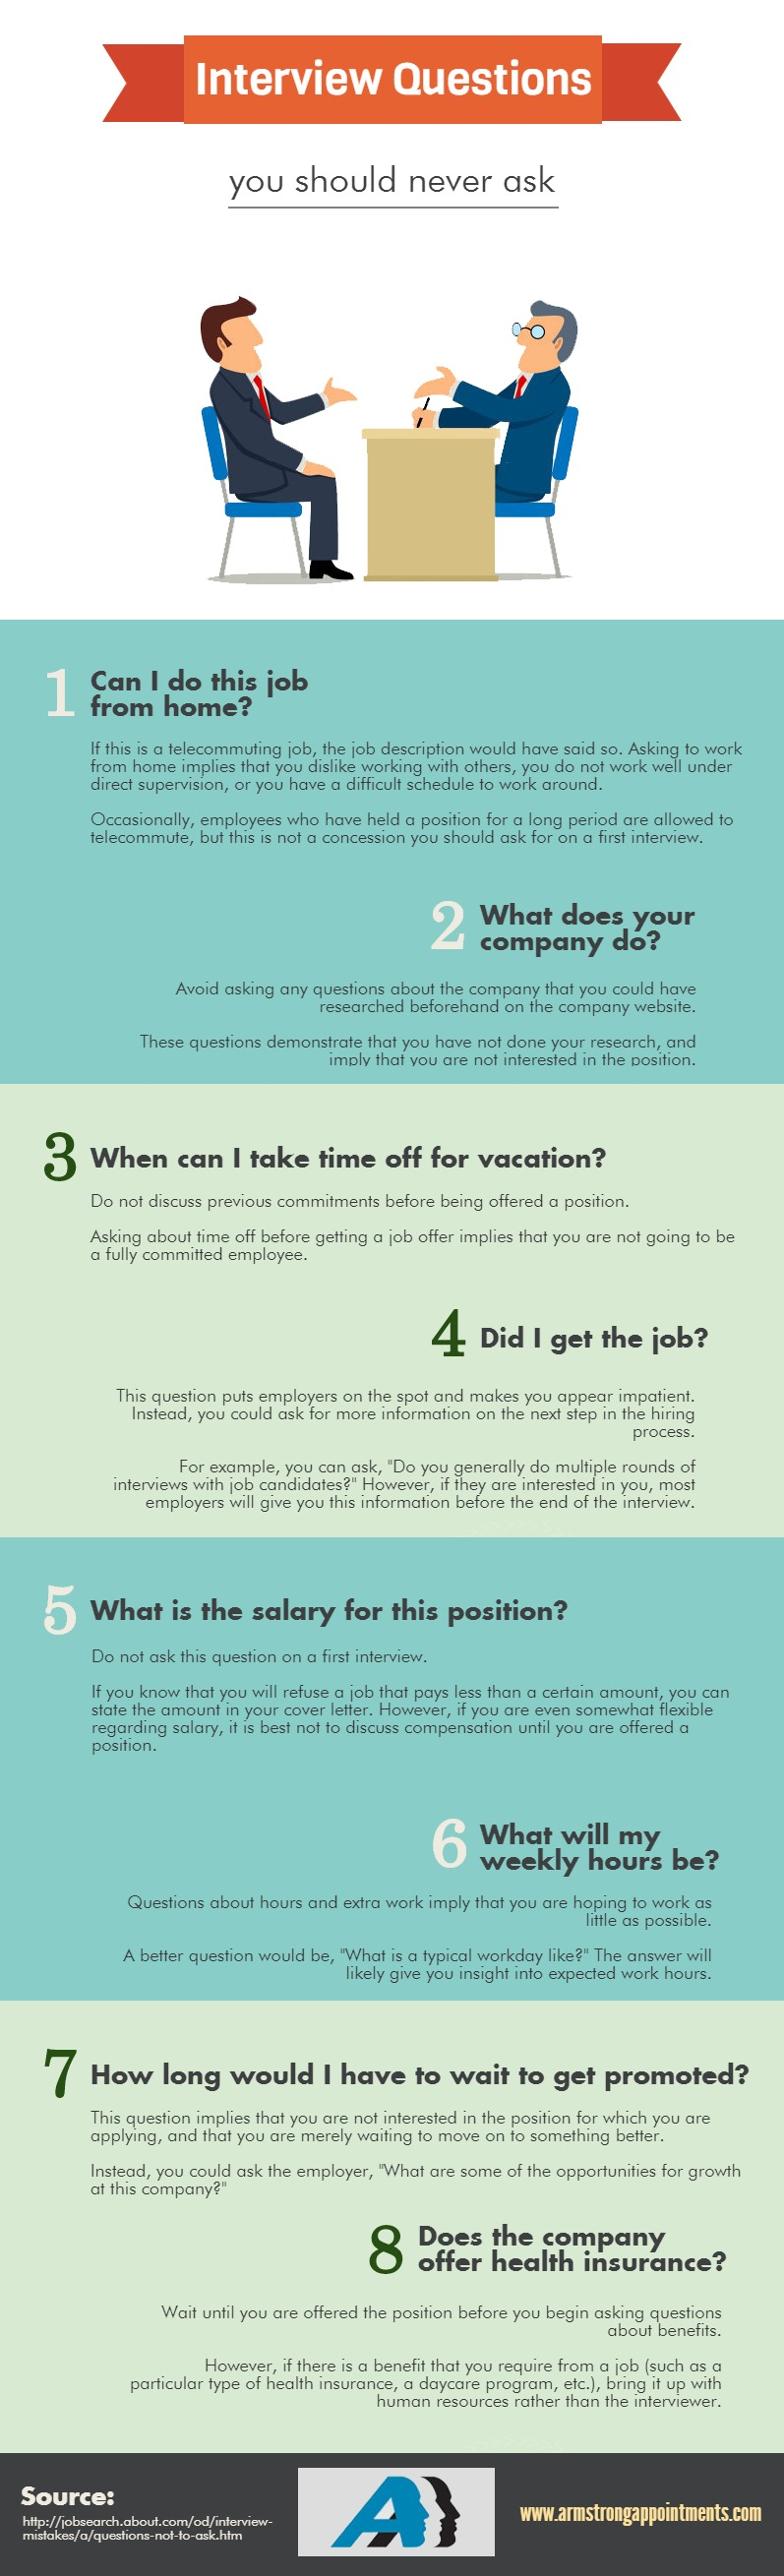 interview questions you should never ask ly